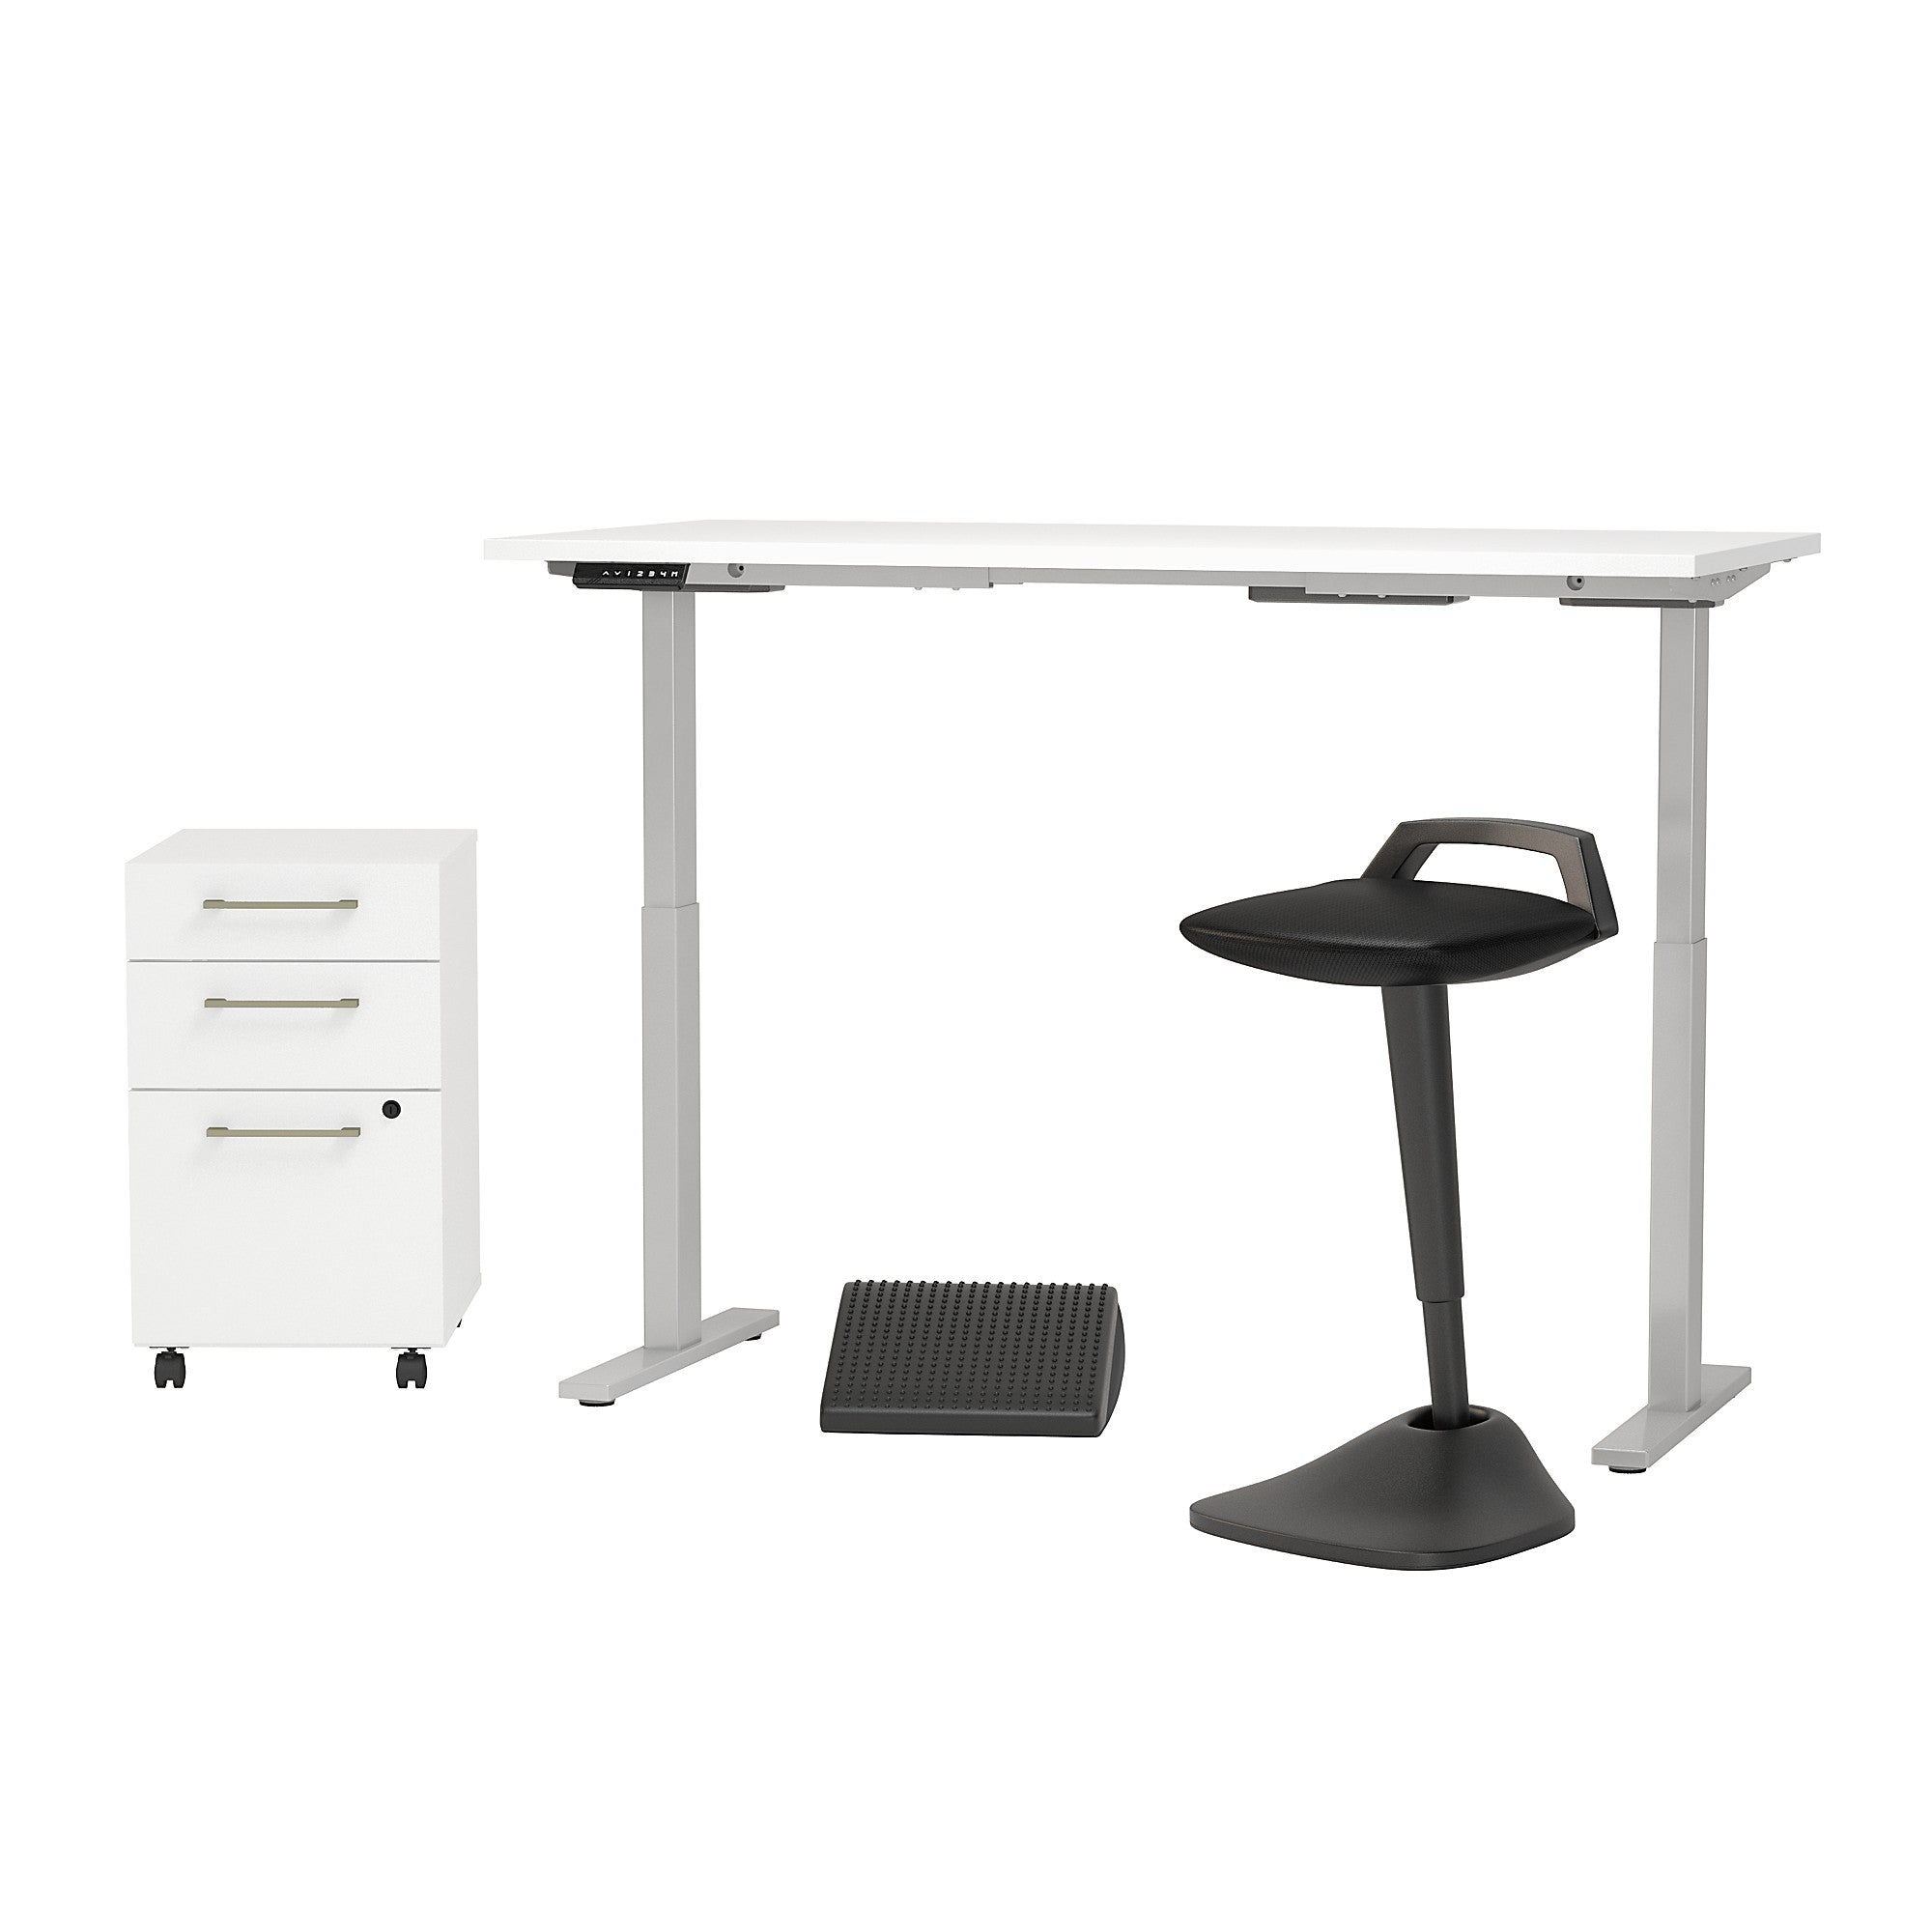 Electric Height Adjustable Standing Desk with Lean Stool Storage